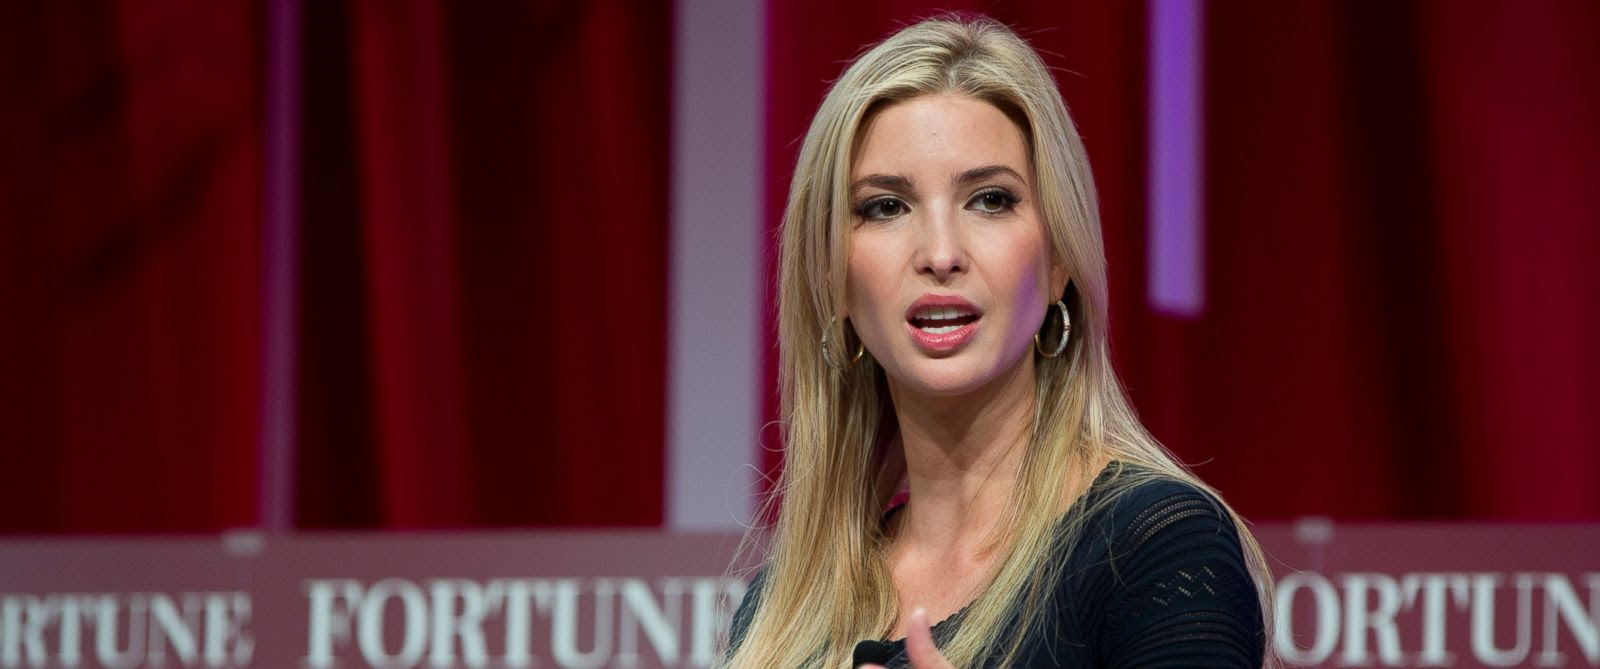 PHOTO: Ivanka Trump, daughter of Republican presidential candidate Donald Trump, speaks at the Fortune Most Powerful Women Summit, Wednesday, Oct. 14, 2015, in Washington.